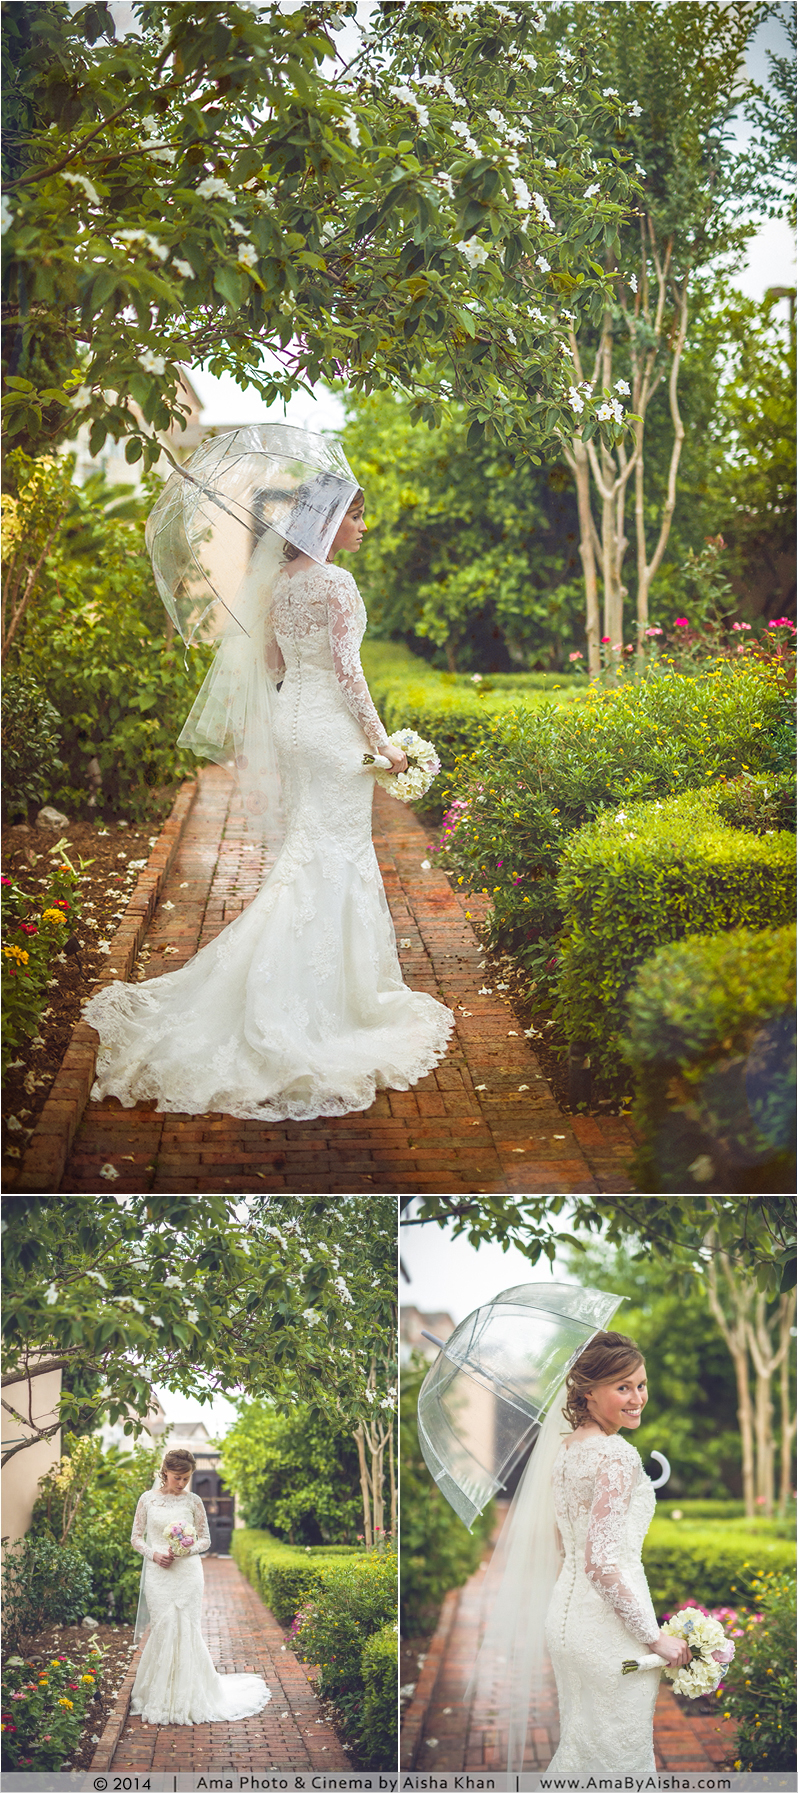 ©2014 | www.AmaByAisha.com | Rainy Day Wedding photography